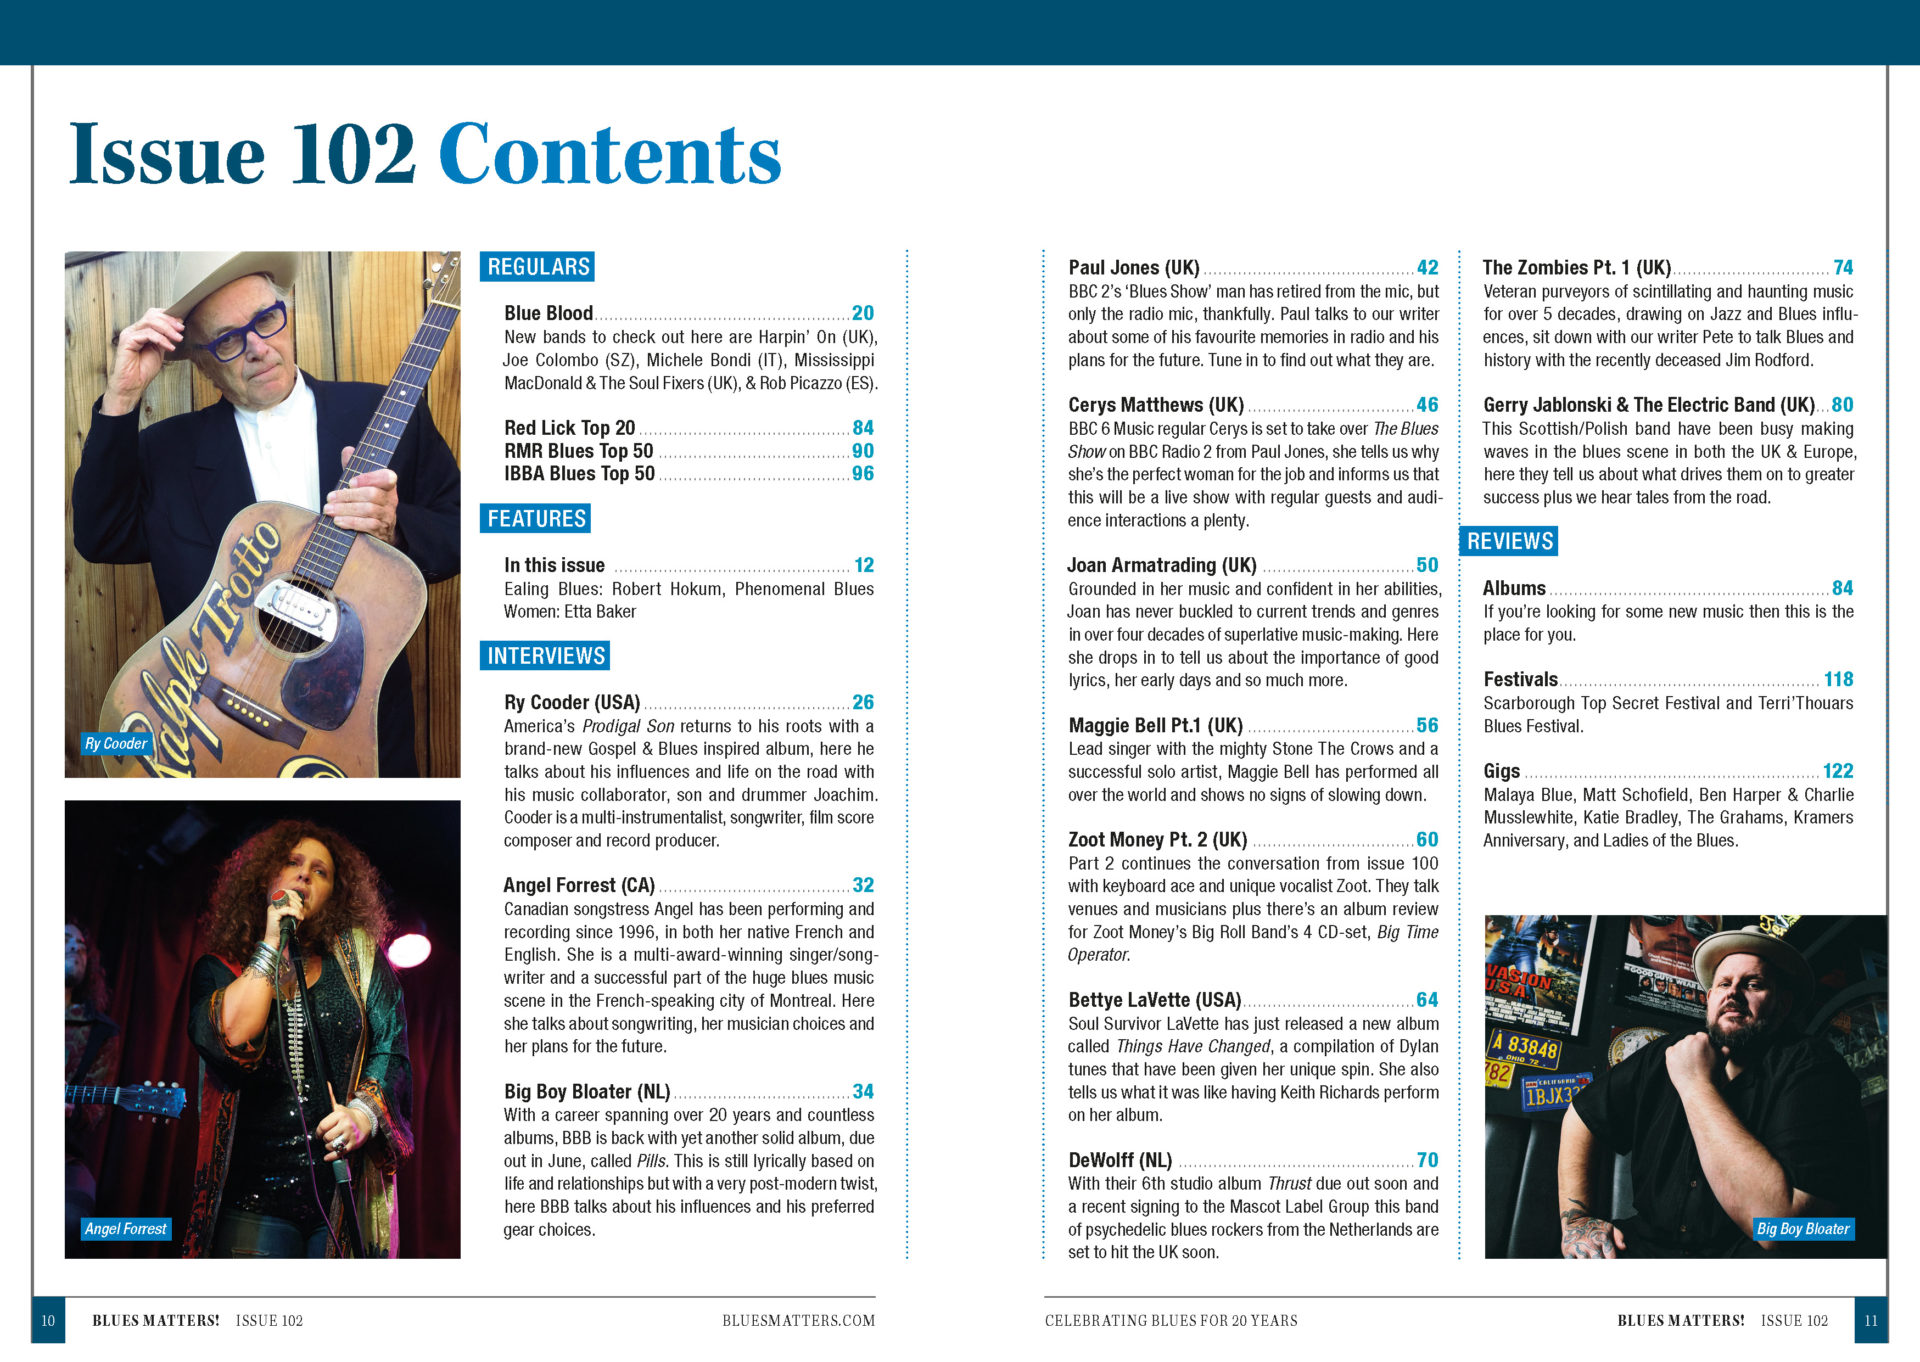 image of the contents page for Blues Matters magazine issue 102